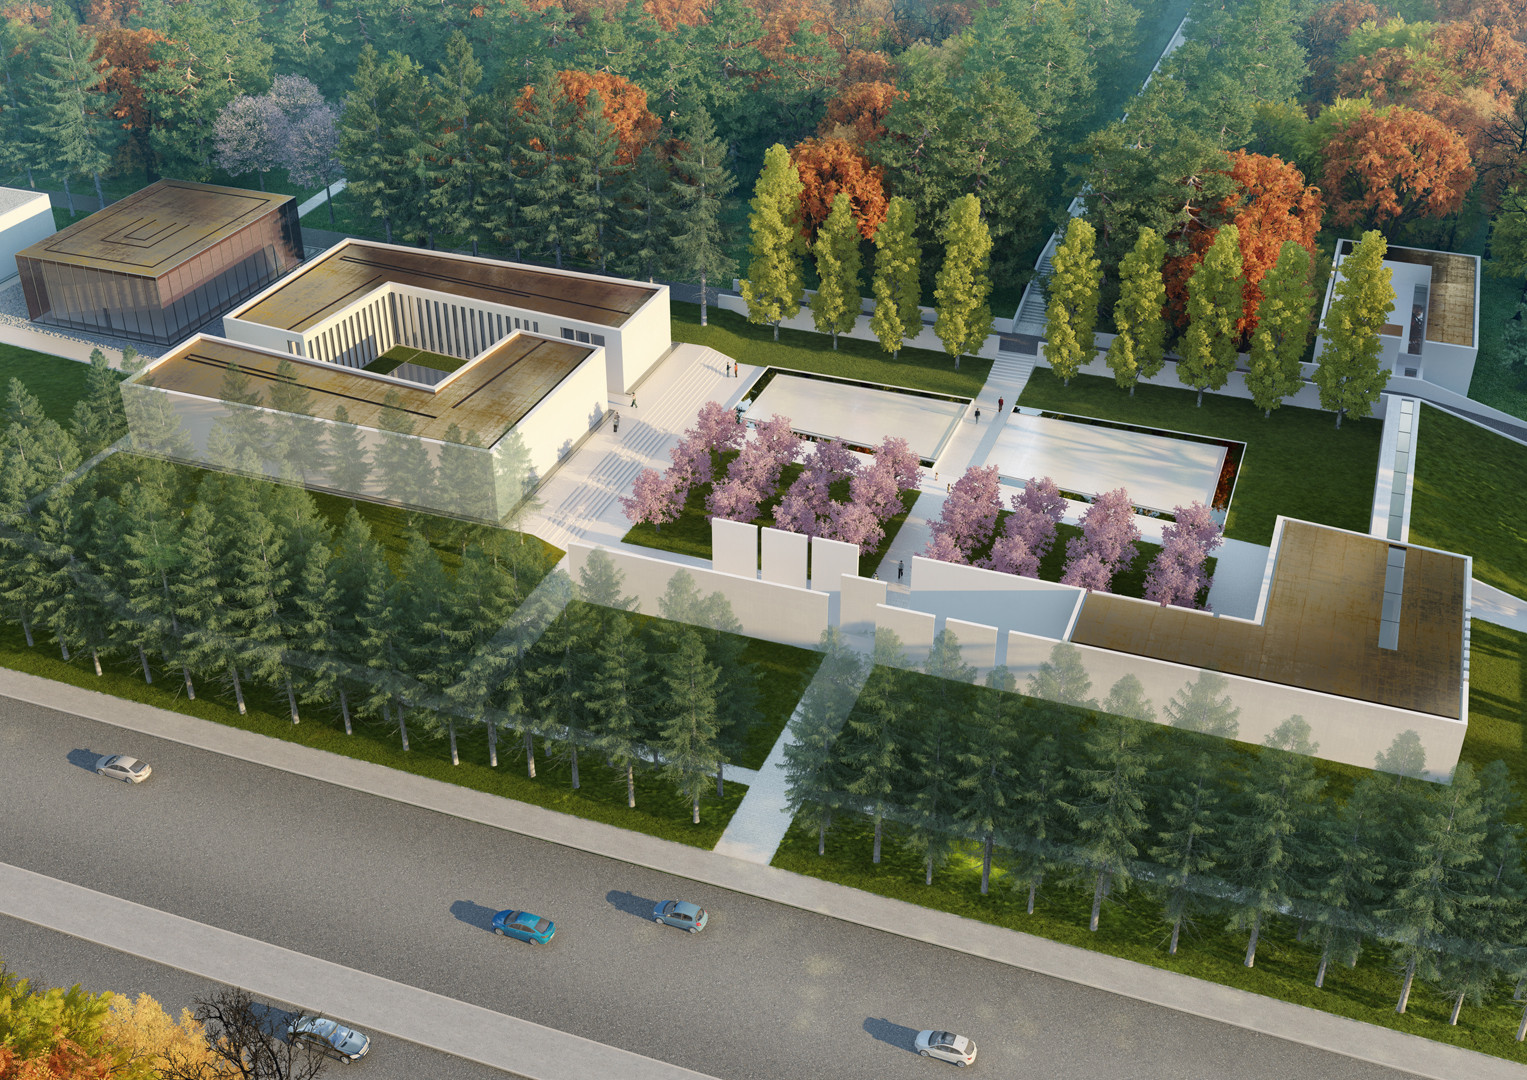 Famen Temple Zen Meditation Center Winning Proposal OAC ArchDaily - Temple landscape architecture